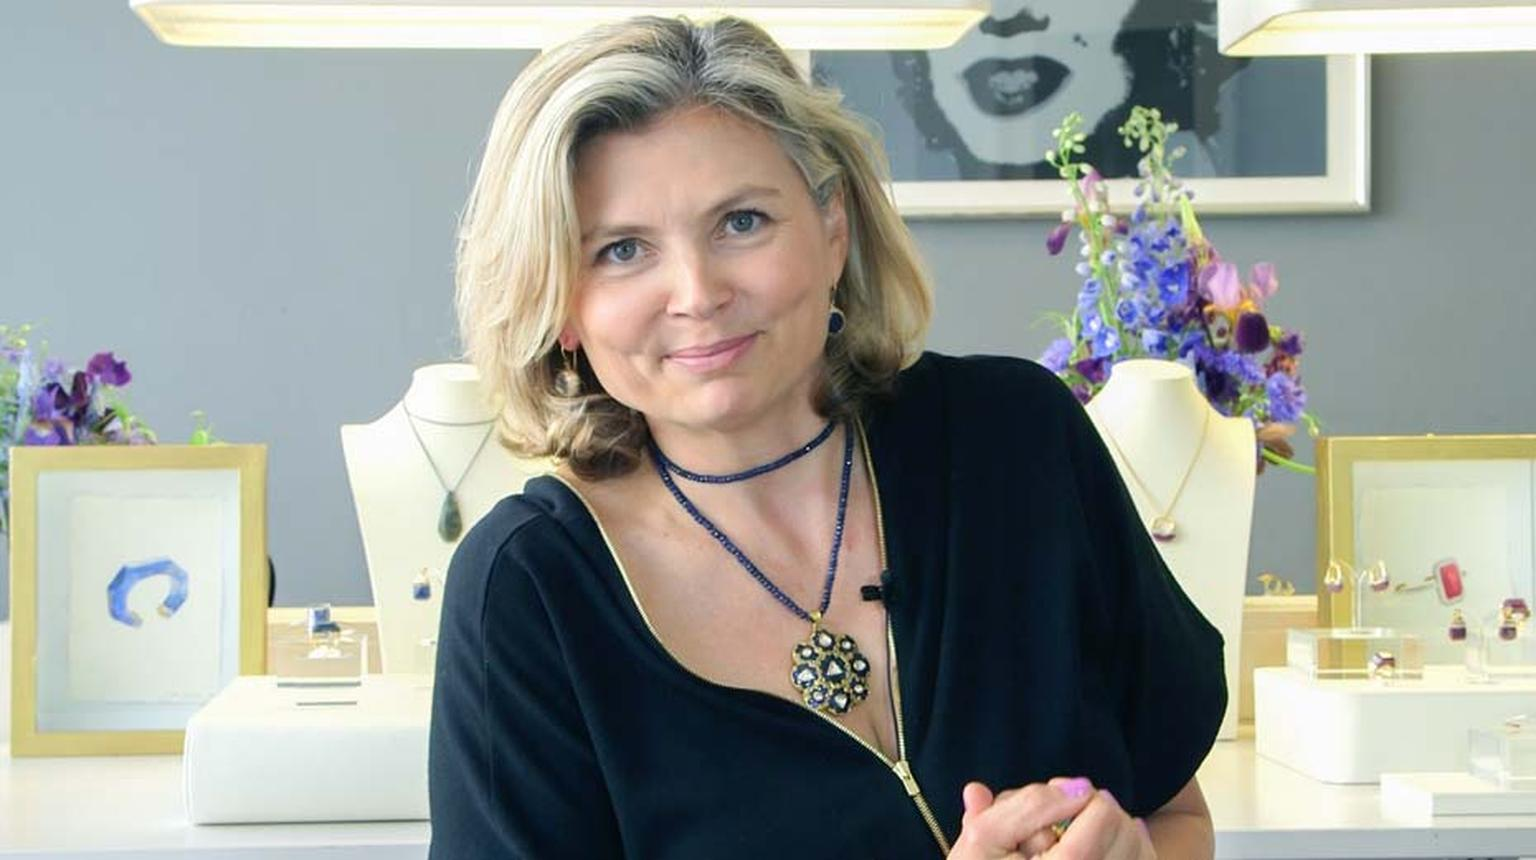 The Jewellery Editor, Maria Doulton, wears several of Jade's newest creations, as styled by Jade herself, including a sapphire and polki diamond necklace, sapphire earrings and a chrysophrase and diamond ring